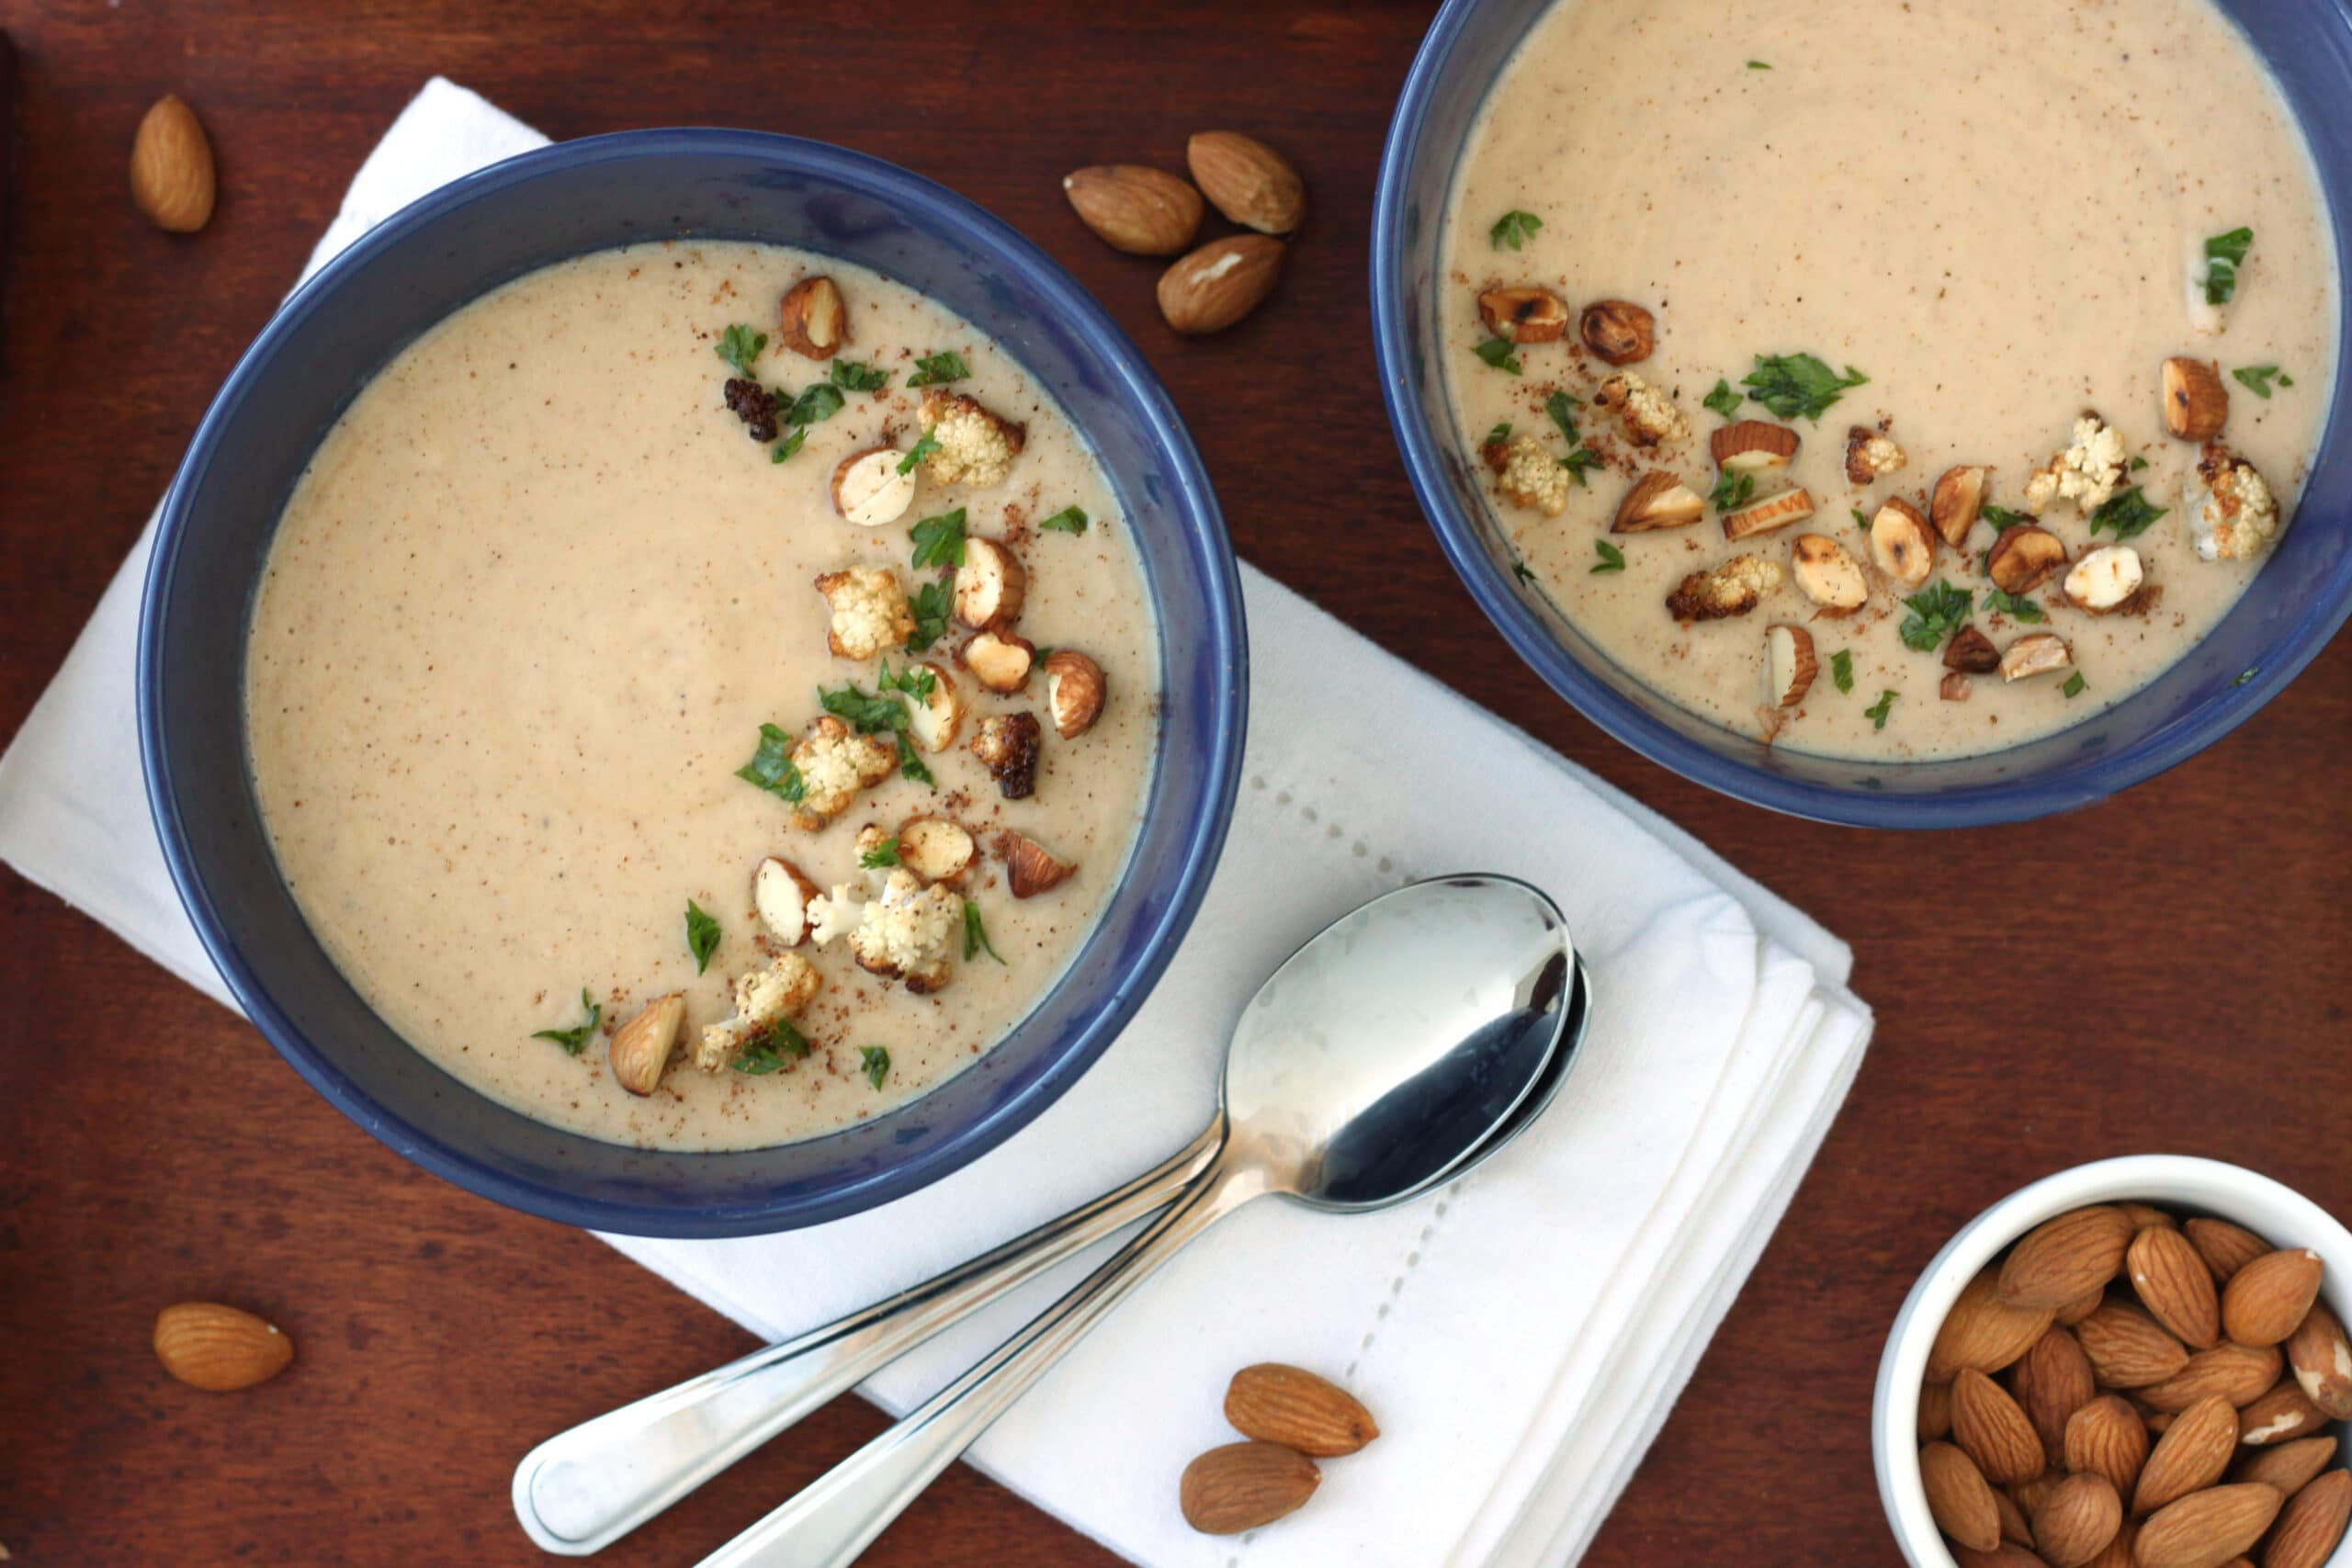 Healthy Homemade Soups & Sandwiches Almond Cauliflower Soup by @jesselwellness #soup #healthysoup